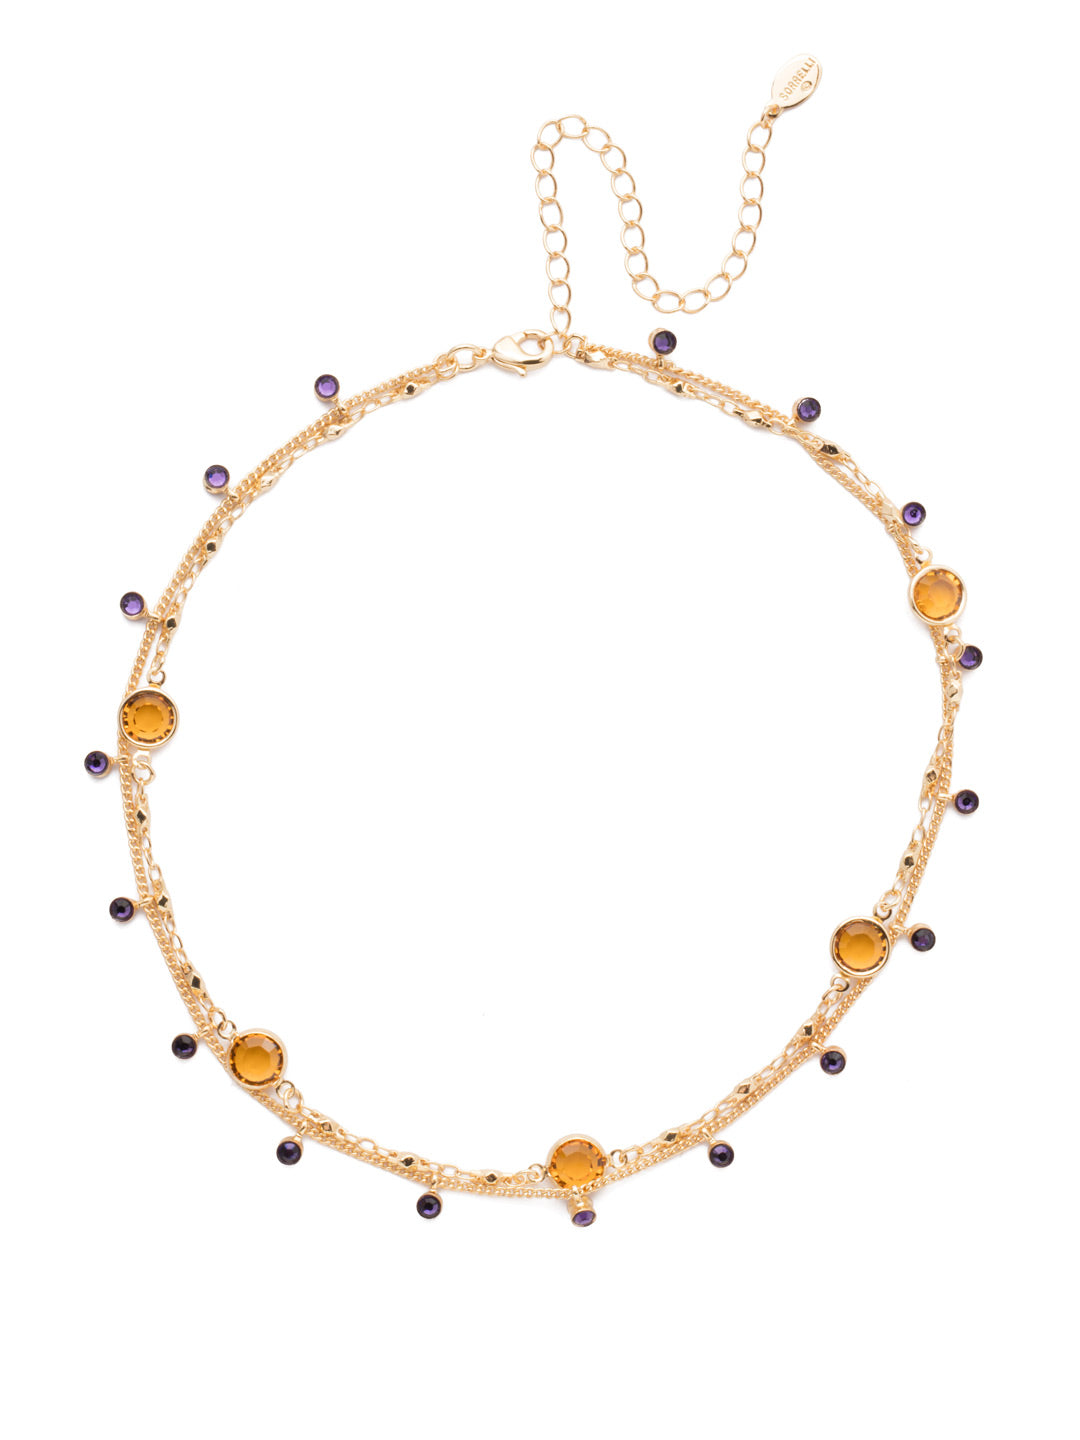 Dewdrop Layered Necklace - NEK36BGLPU